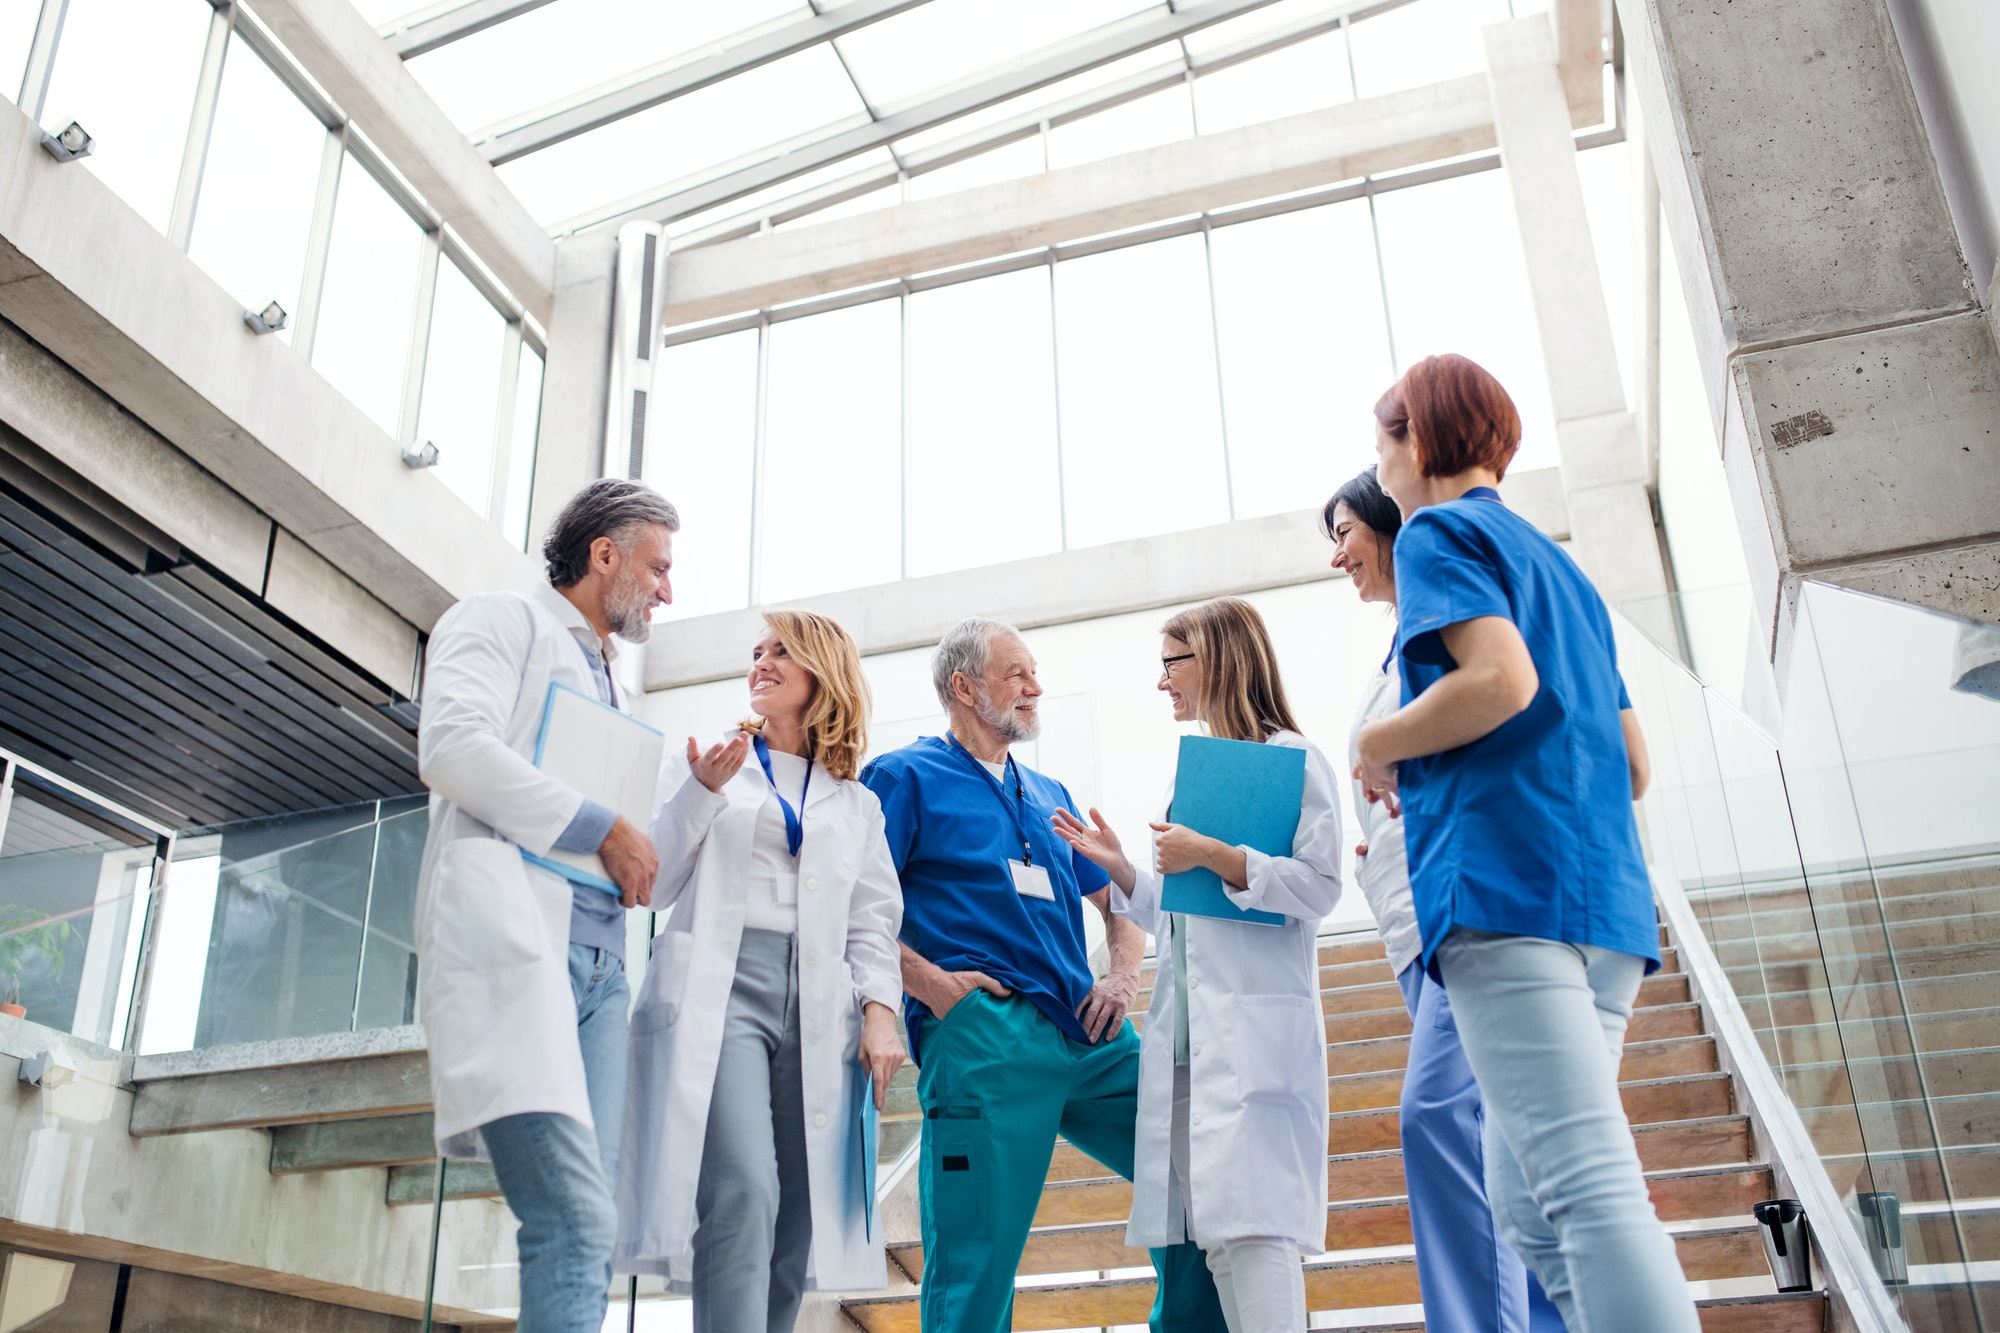 Group of doctors standing on staircase, talking